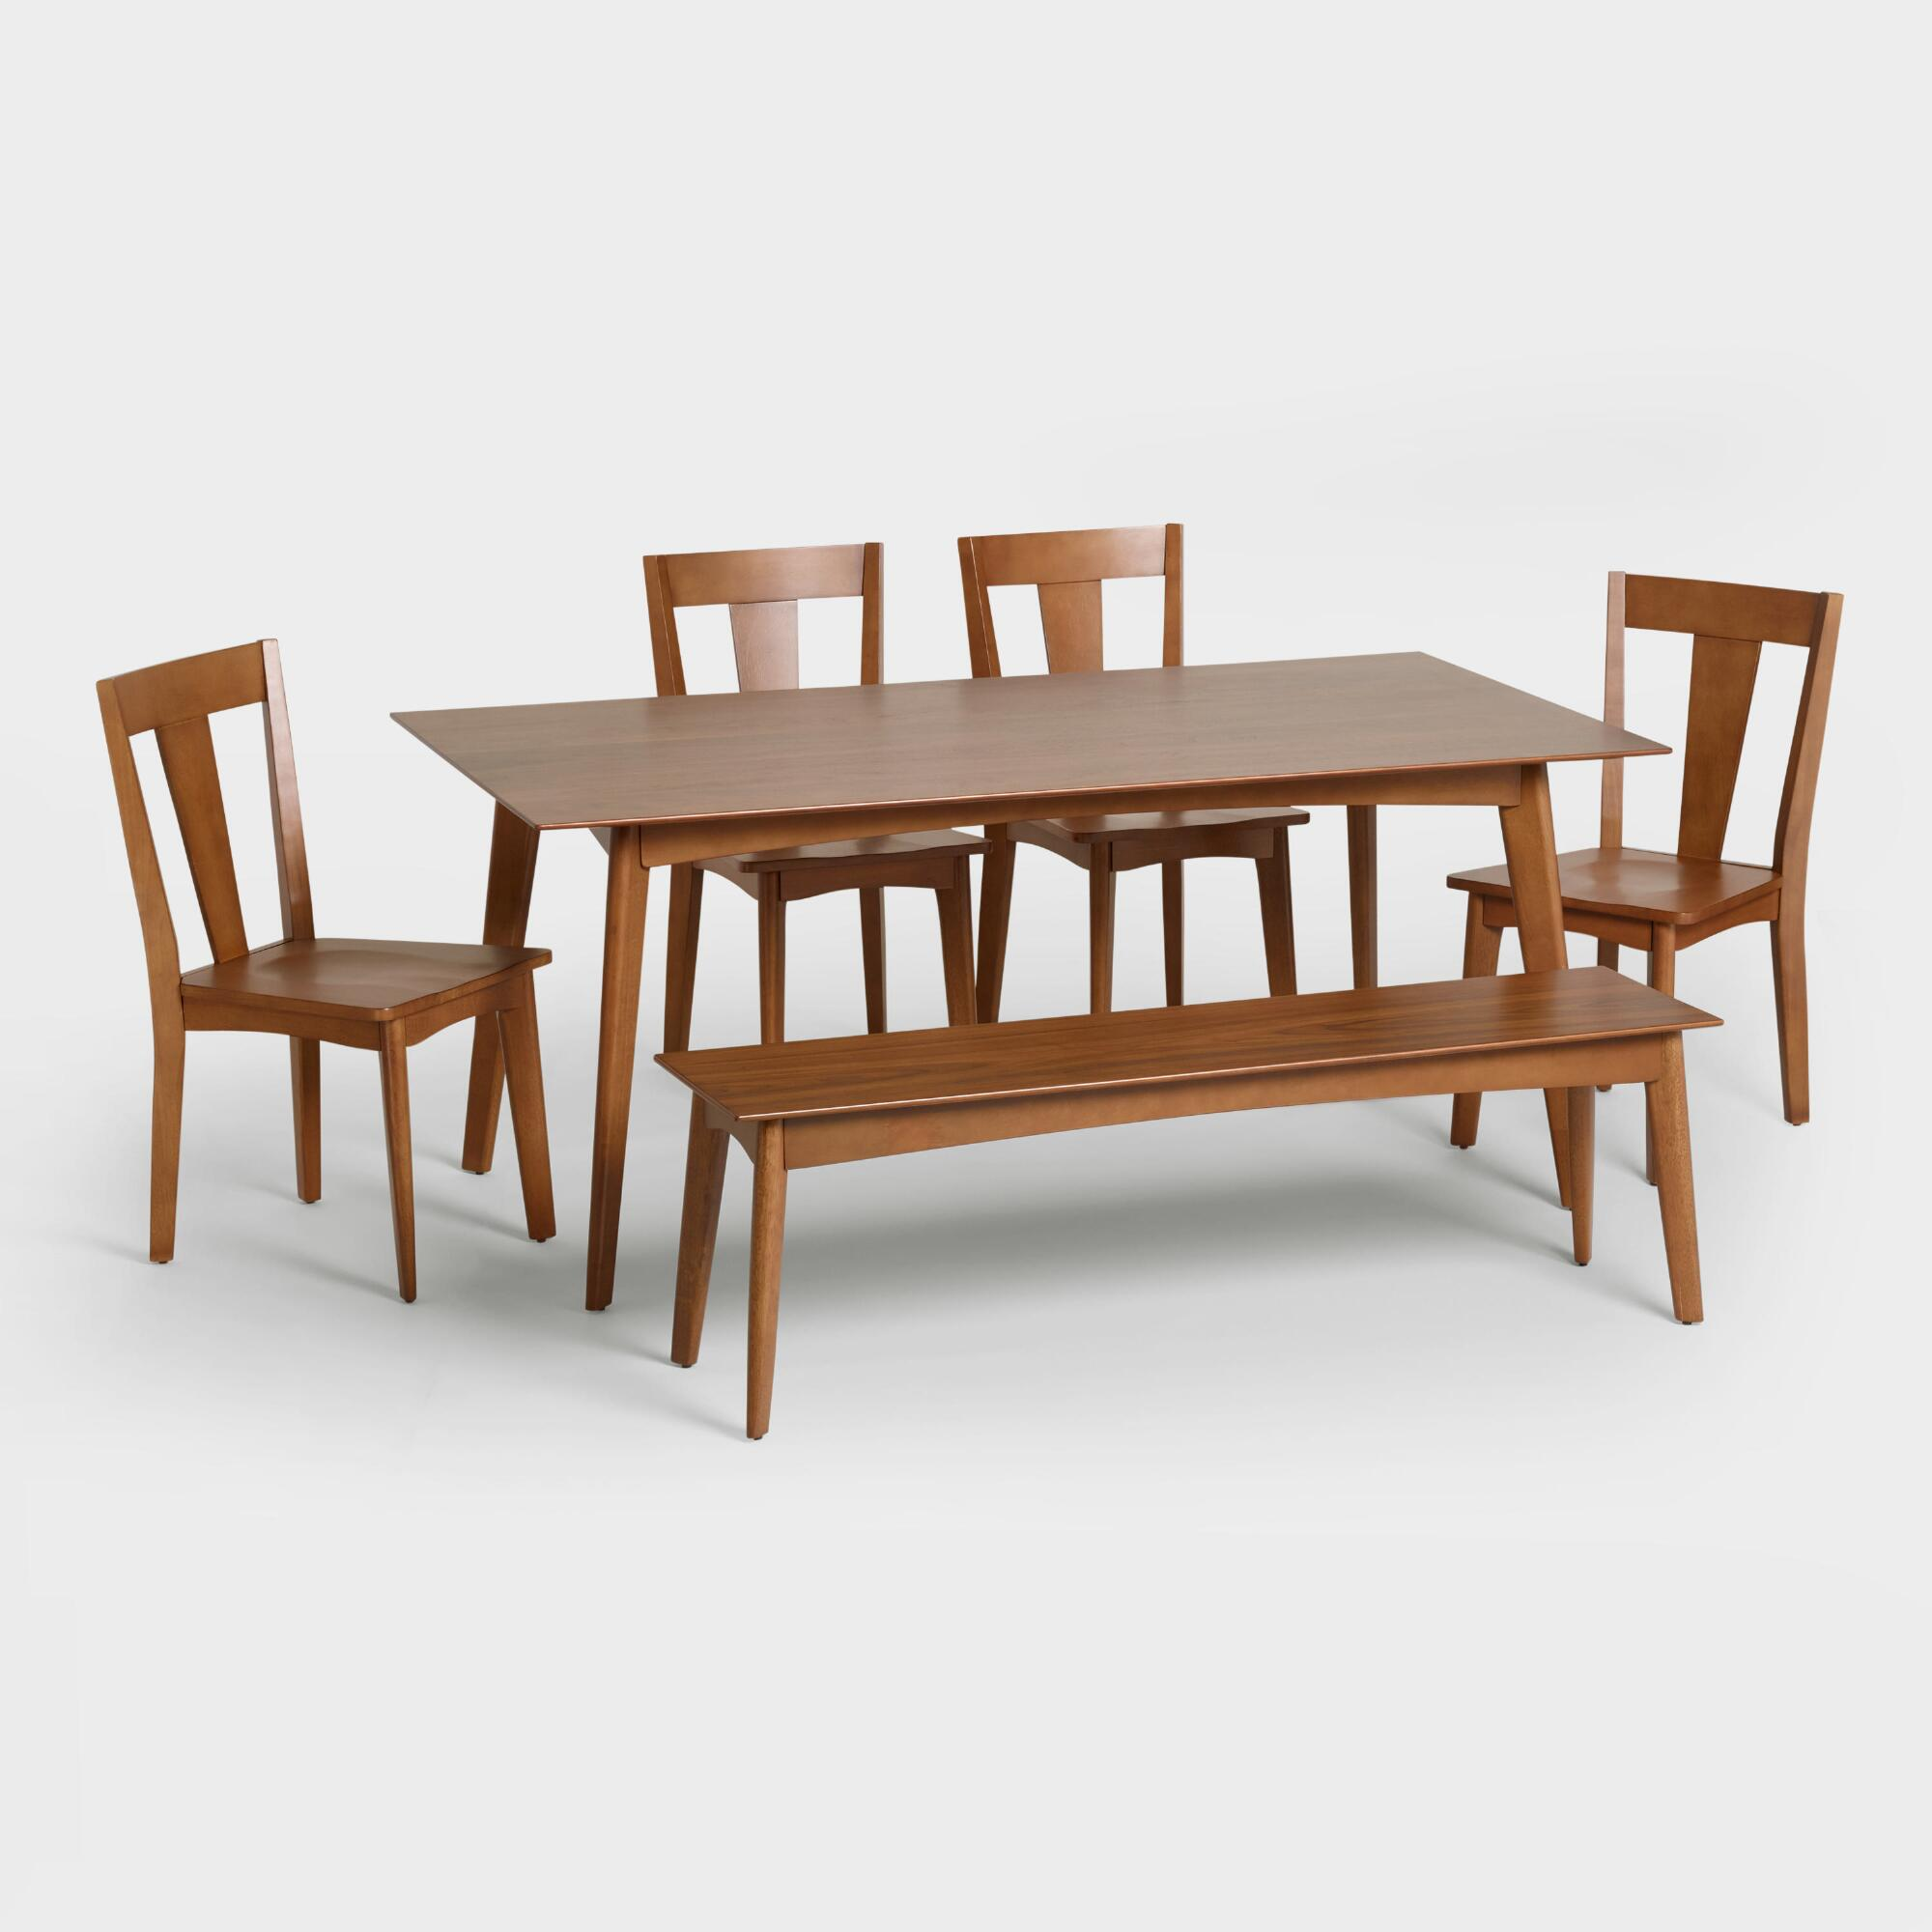 Rustic wood dining table w 4 upholstered chair 84 in l - Weston Mid Century Dining Collection